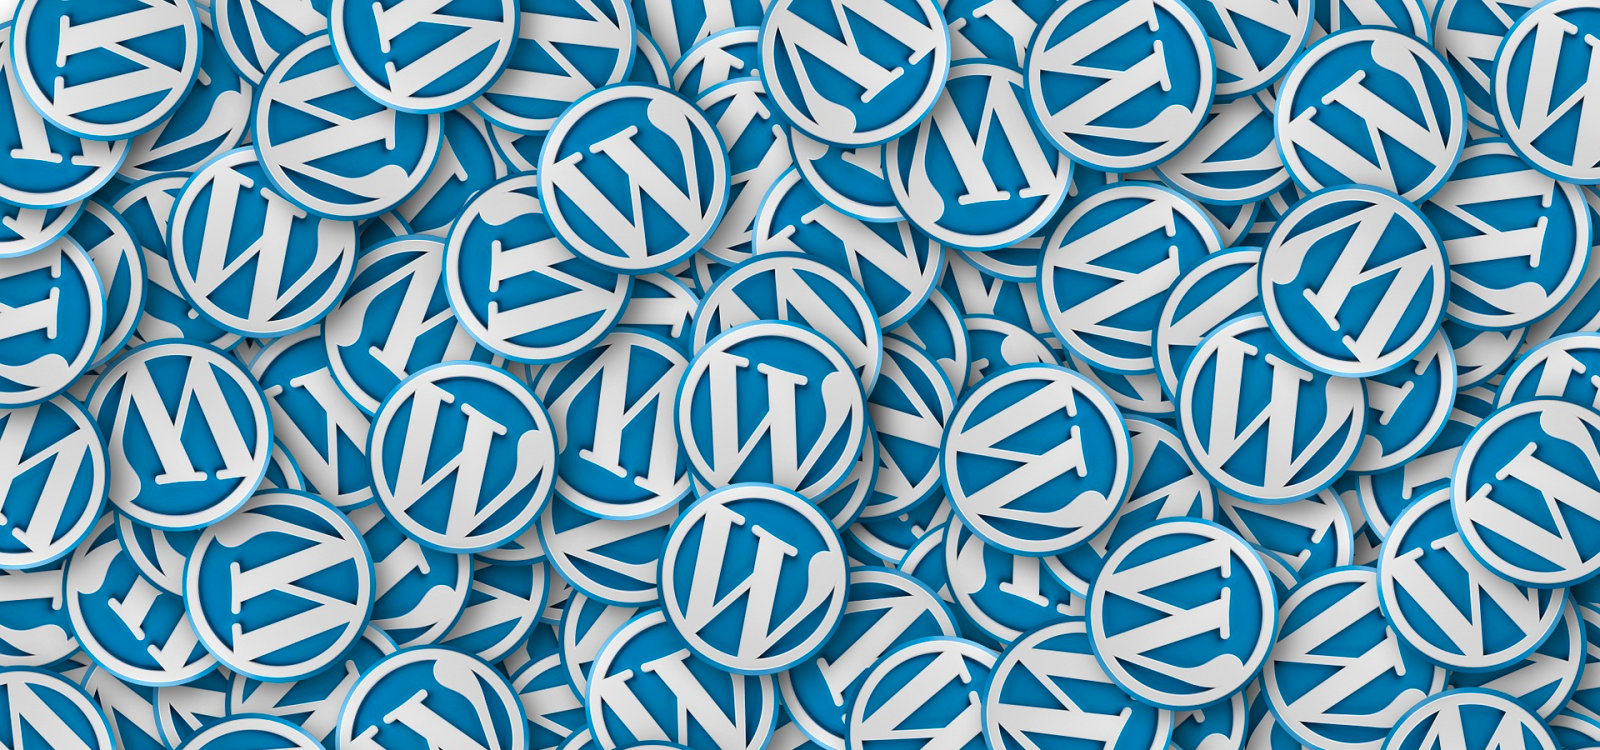 <div class='slider_caption'> <h1>Have an existing or setting up a new WordPress website that you need help with? Then we can help.</h1> <a class='slider-readmore' href=''>Find out more</a> </div>